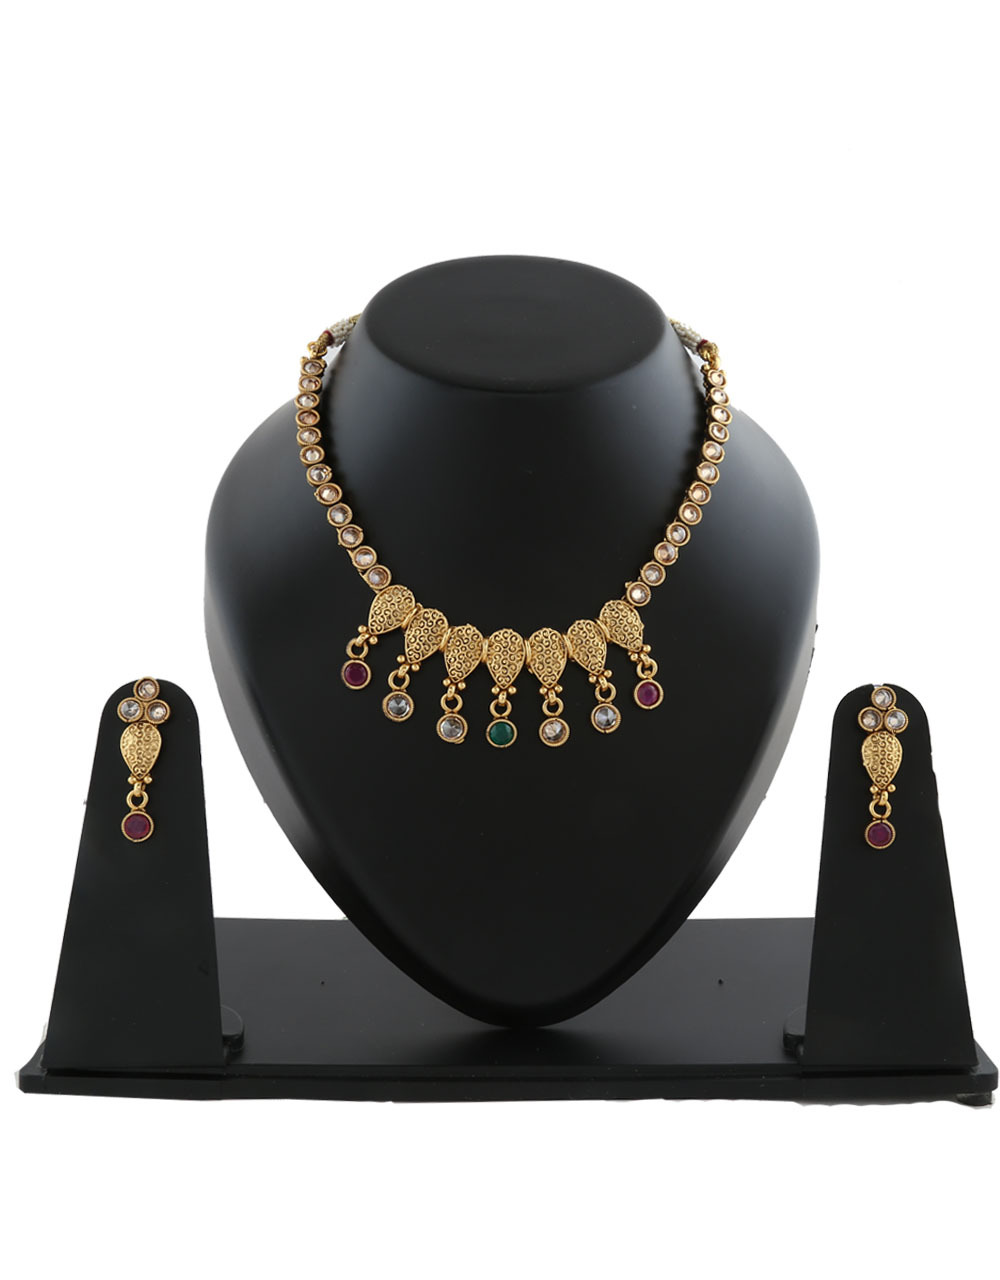 Fashionable Gold Tone Designer Necklaec Set Styled With Stones Fancy Necklace